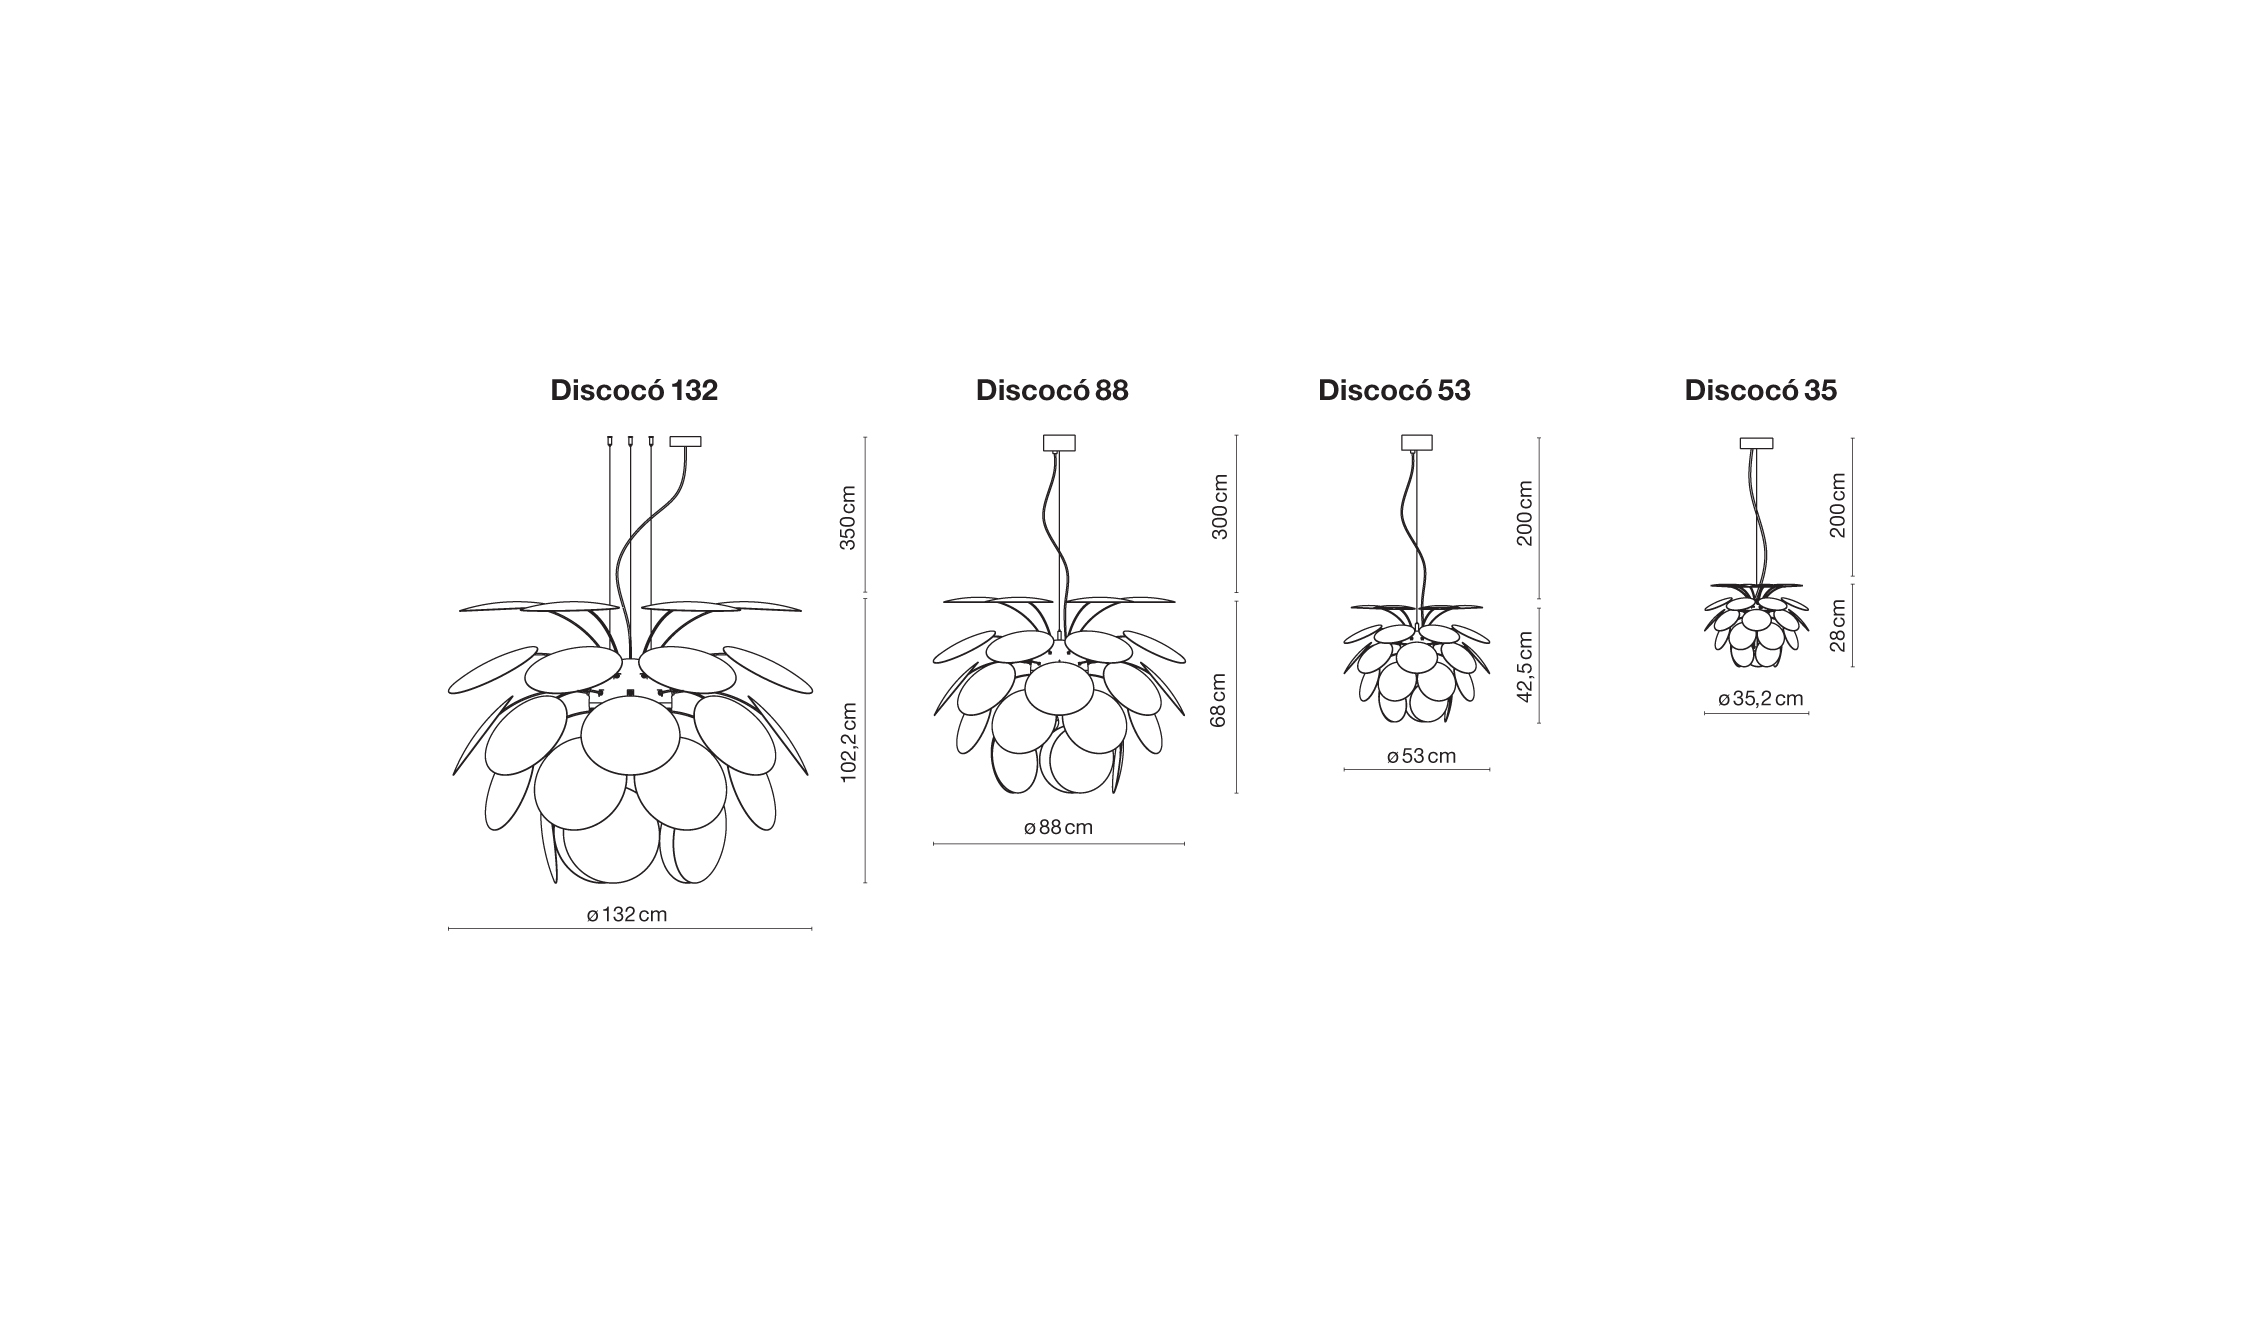 Discoco Pendant By Marset Ecc Nz Lighting Diagram Size Specifications